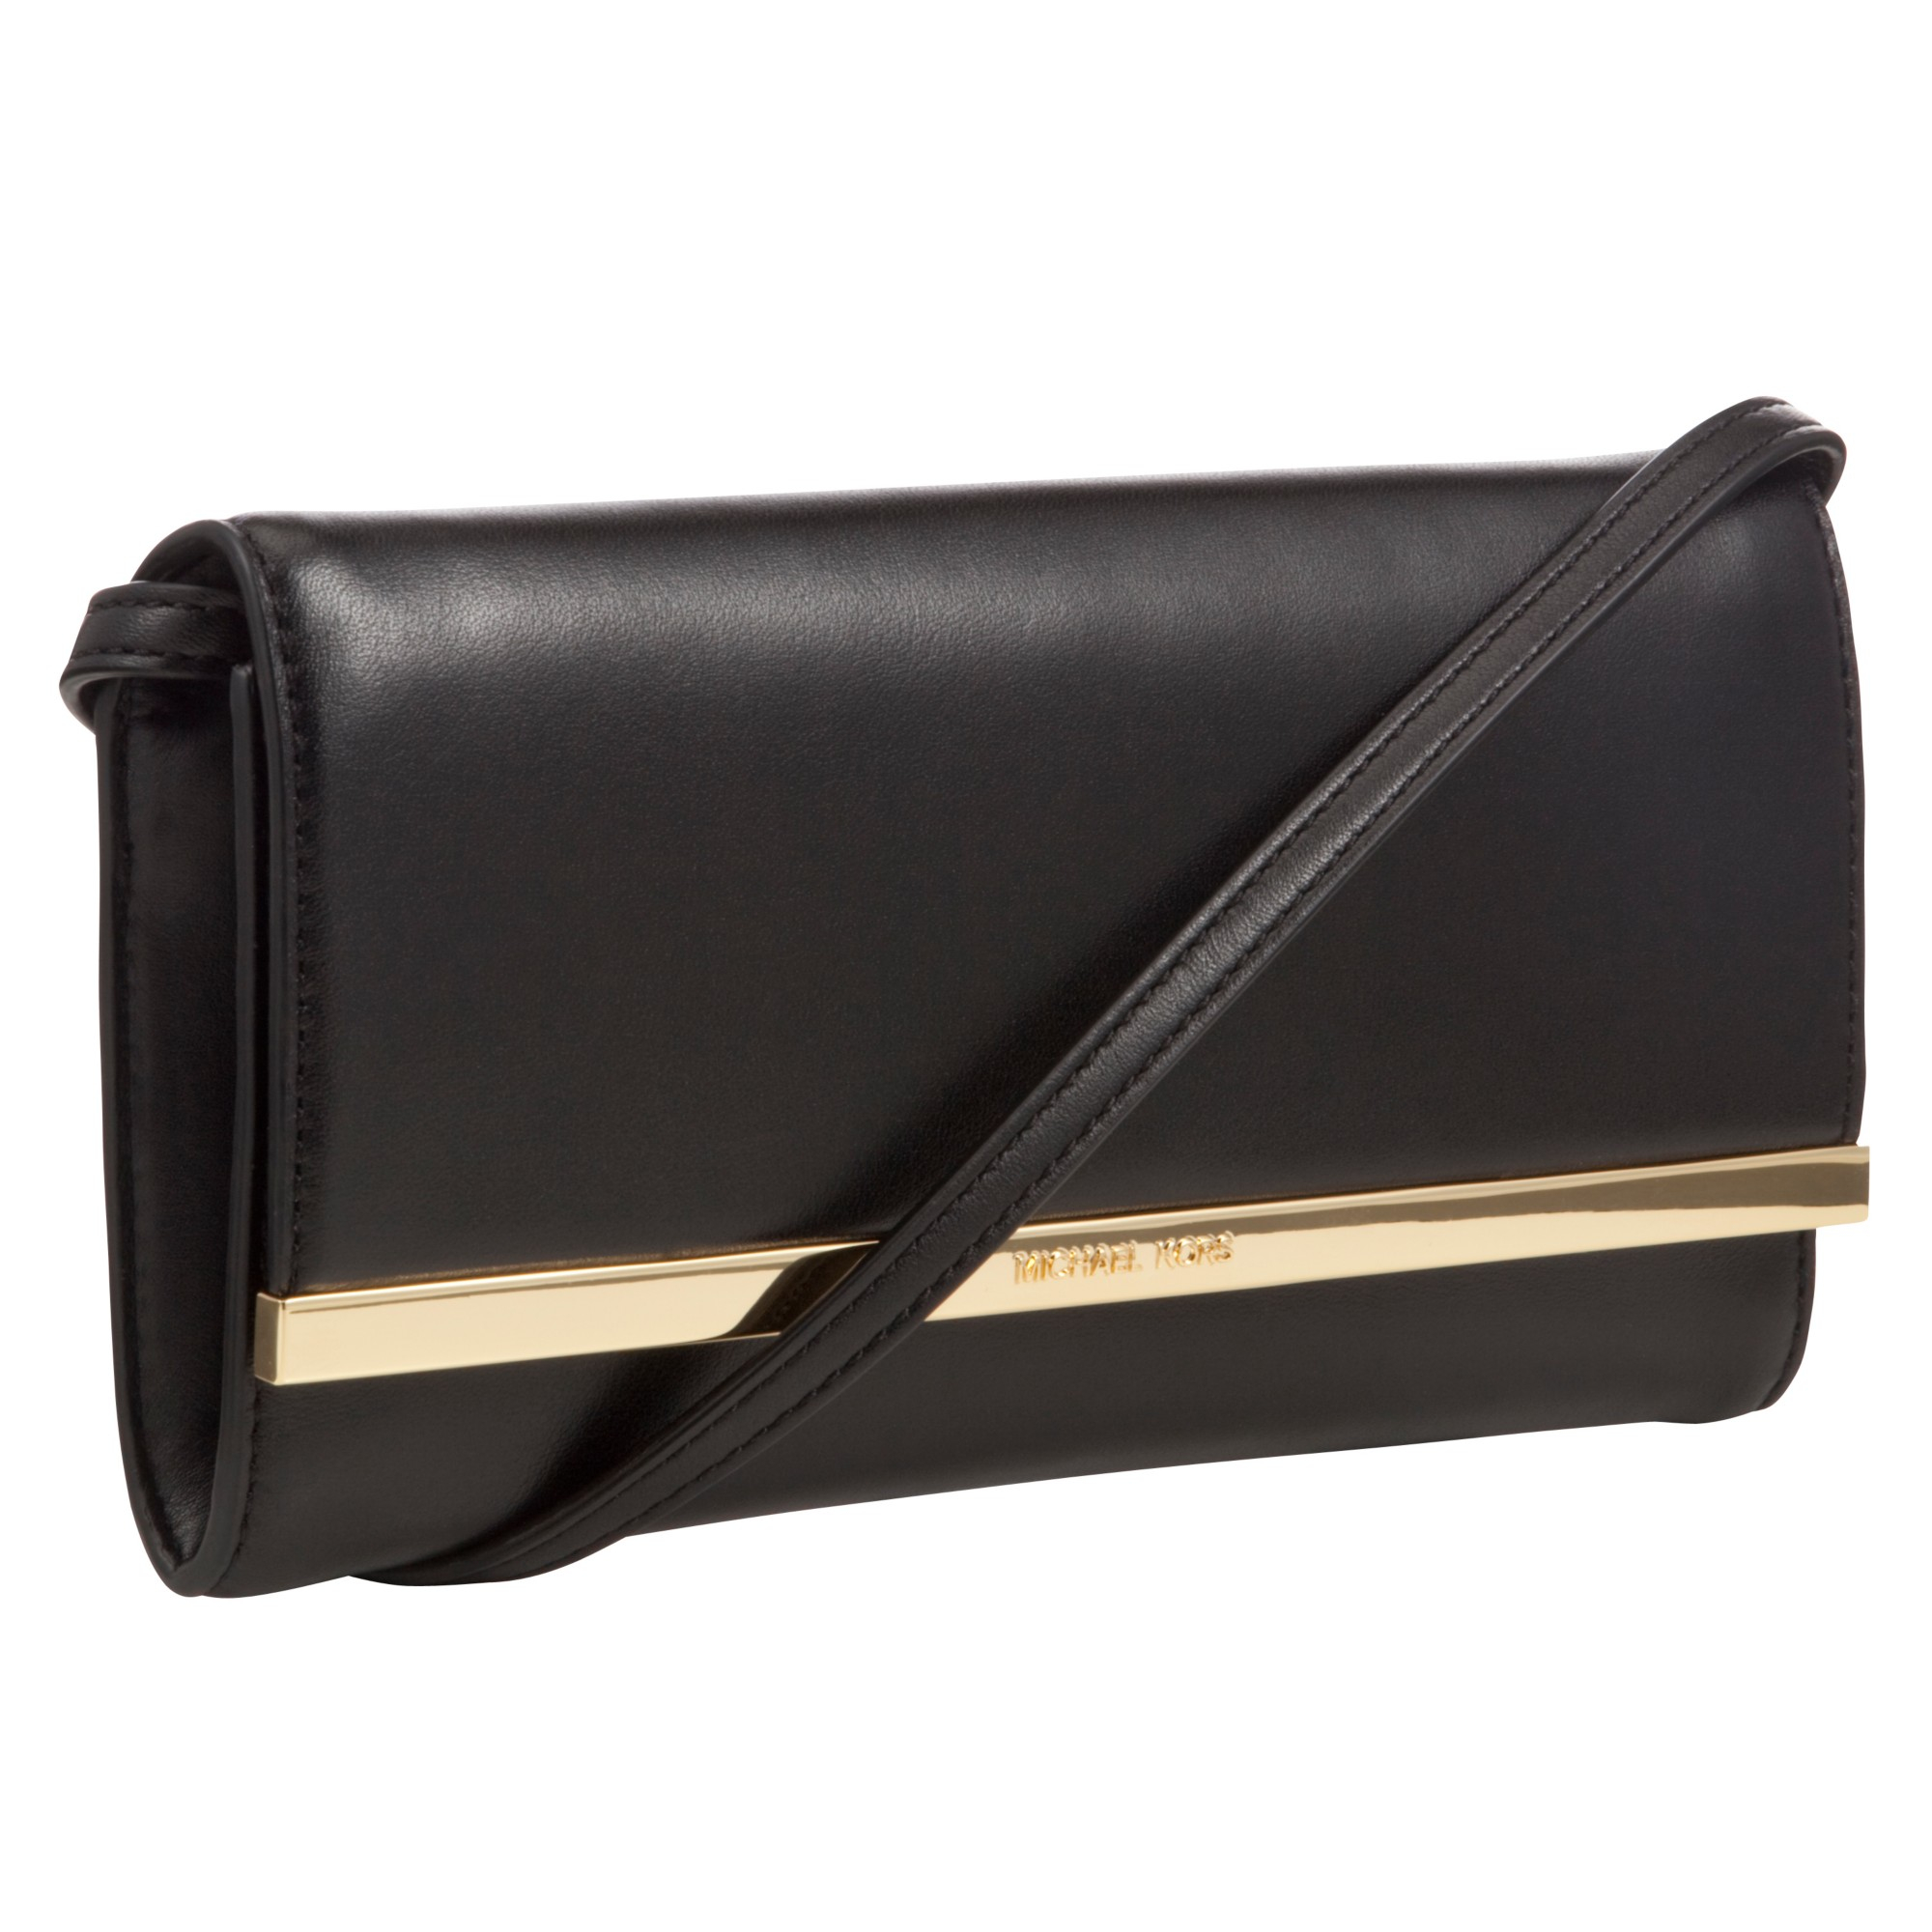 3b99bb5aa586a Womens Michael By Michael Kors Lana ... Lana Envelope Black Leather Clutch  Lana Envelope Clutch Bag